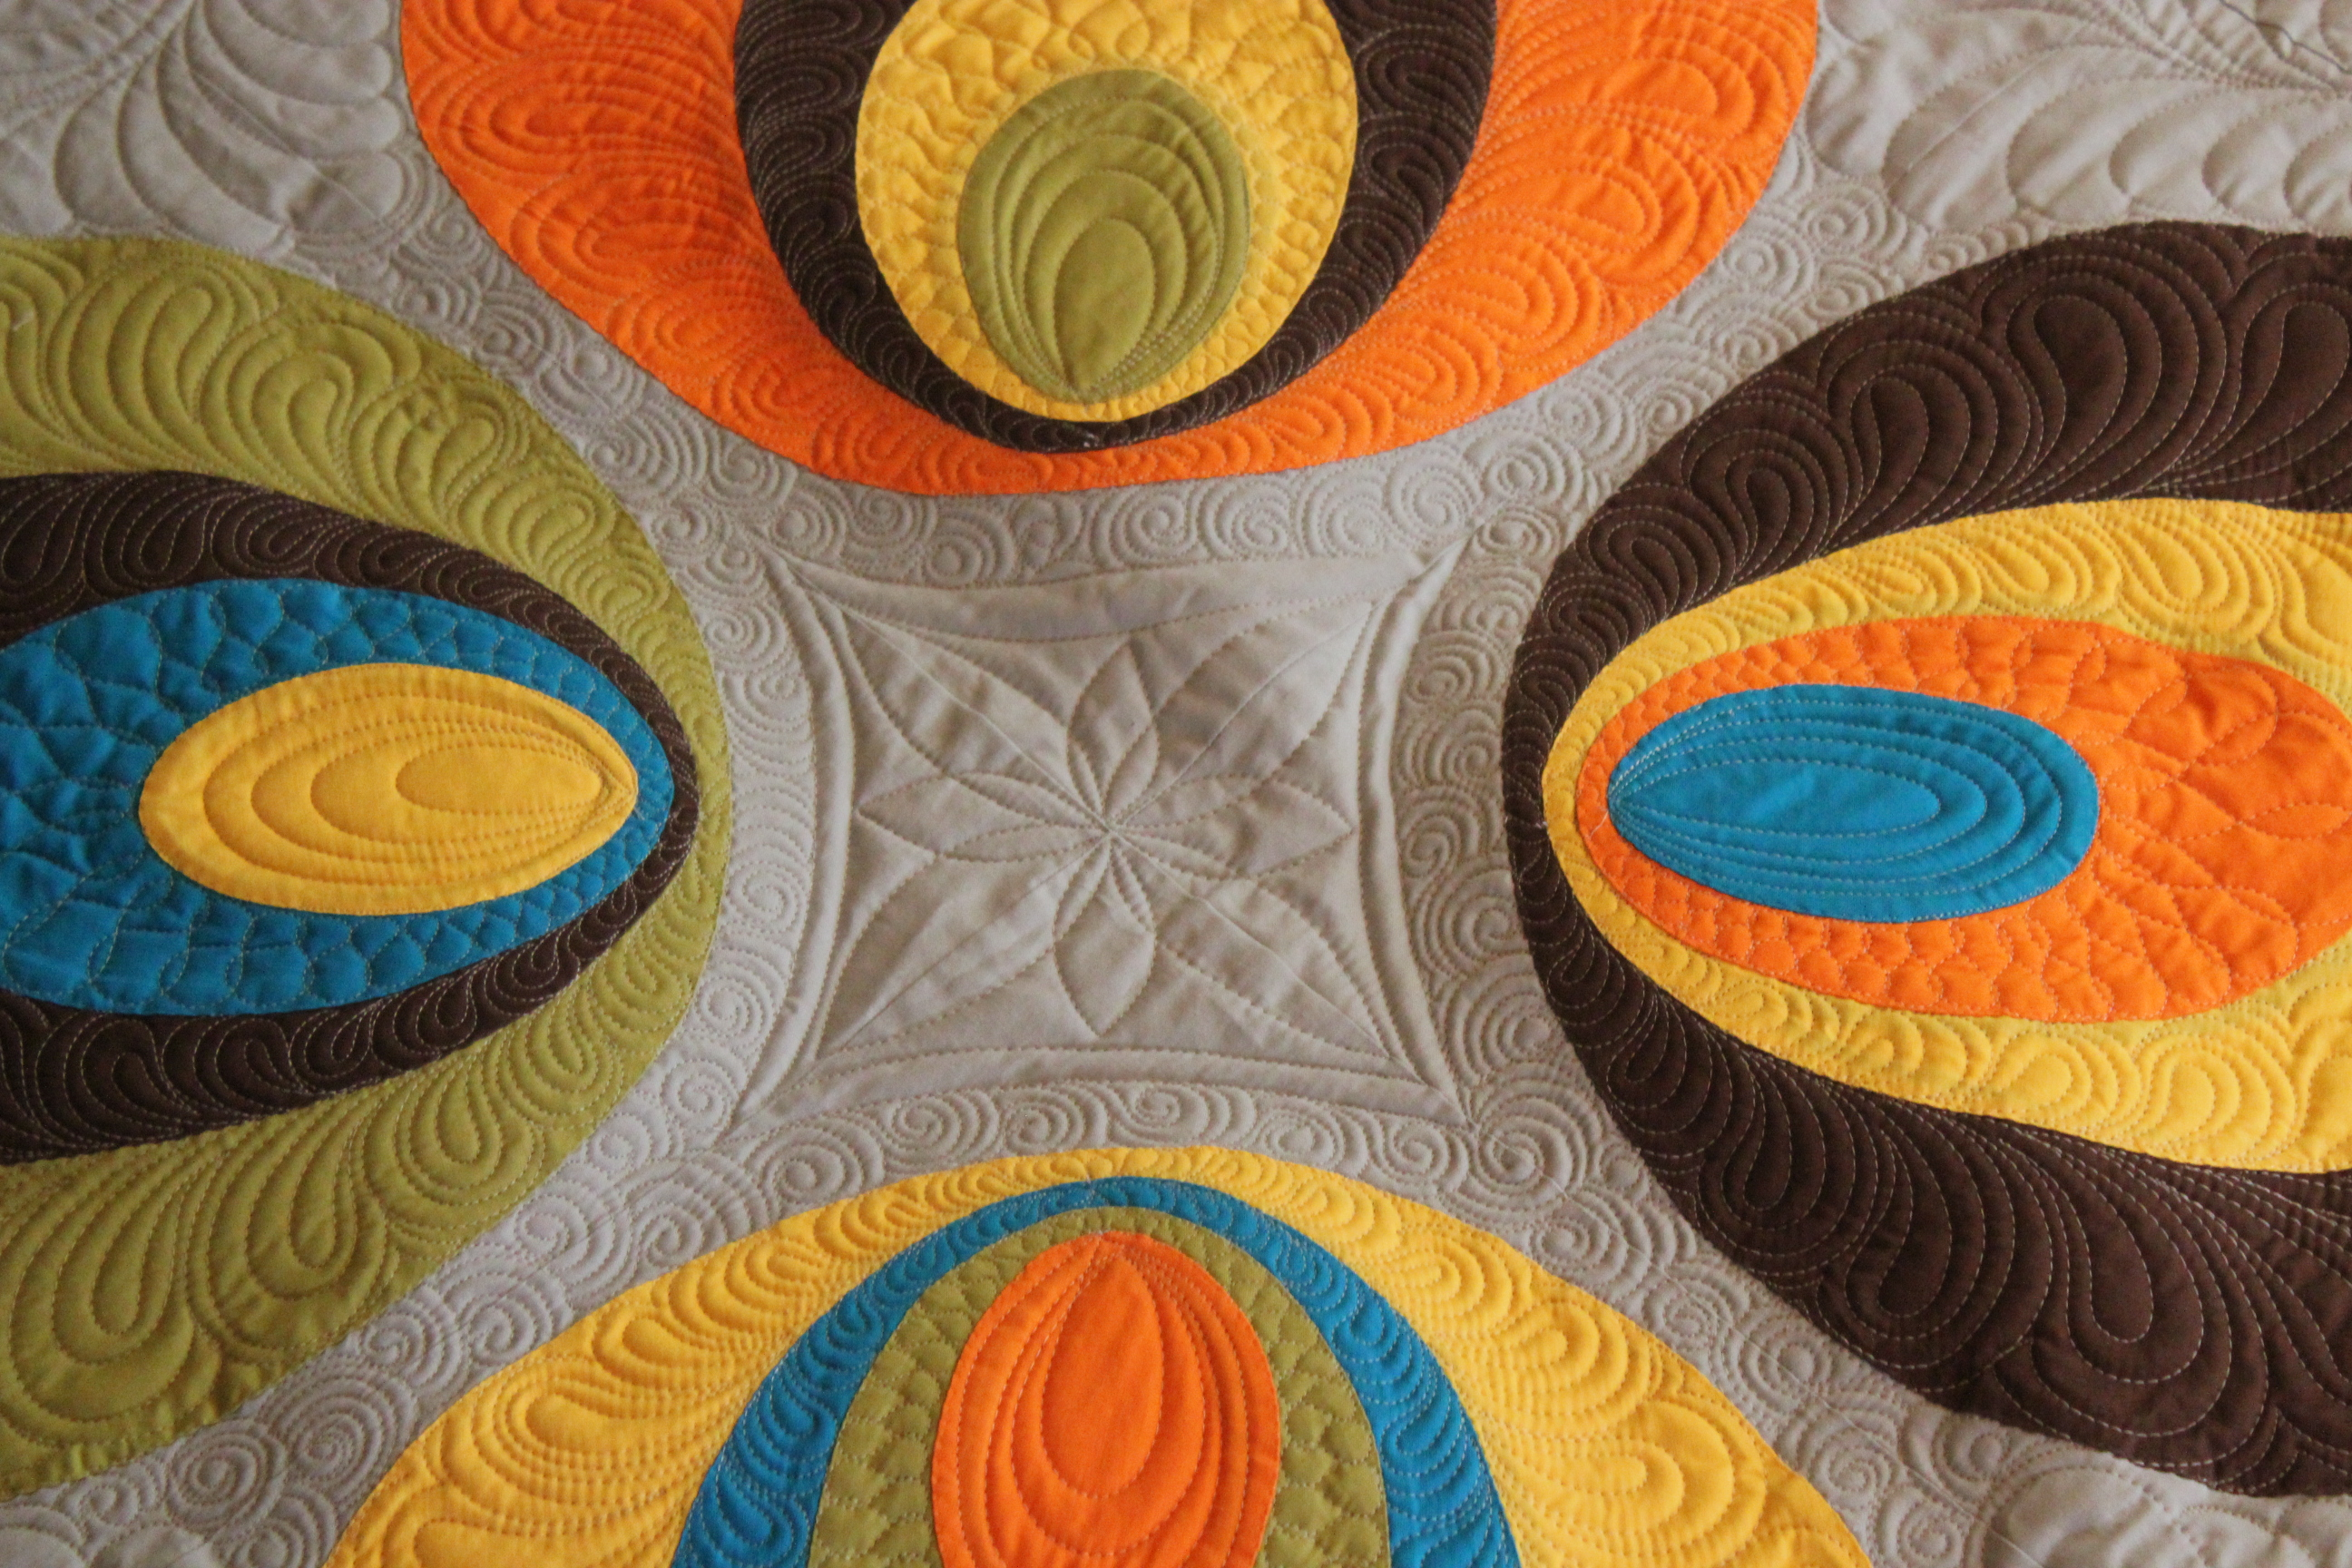 Quilting is my therapy machine quilting applique quilts angela walters